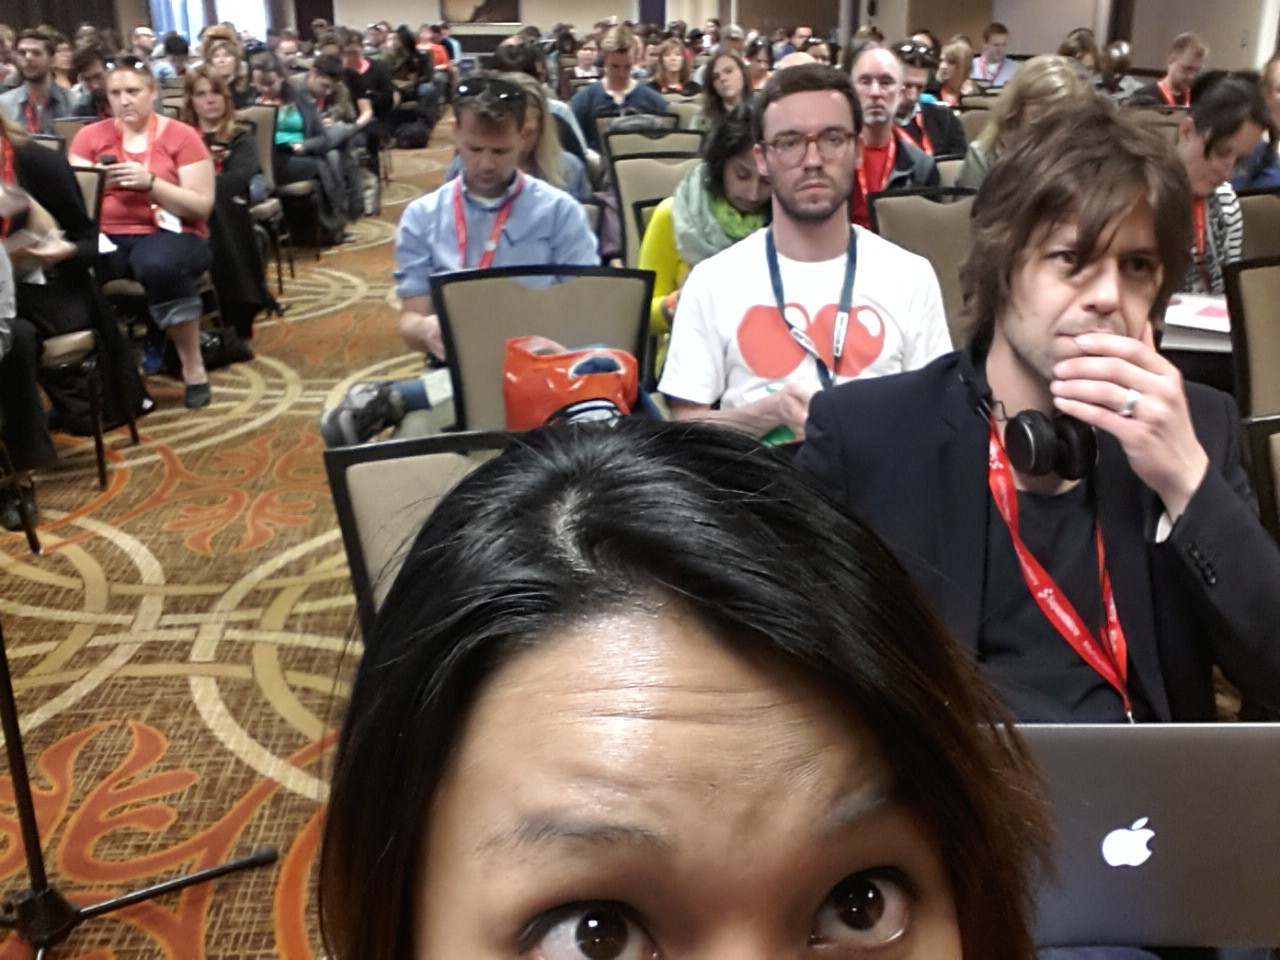 It was a full house for this panel